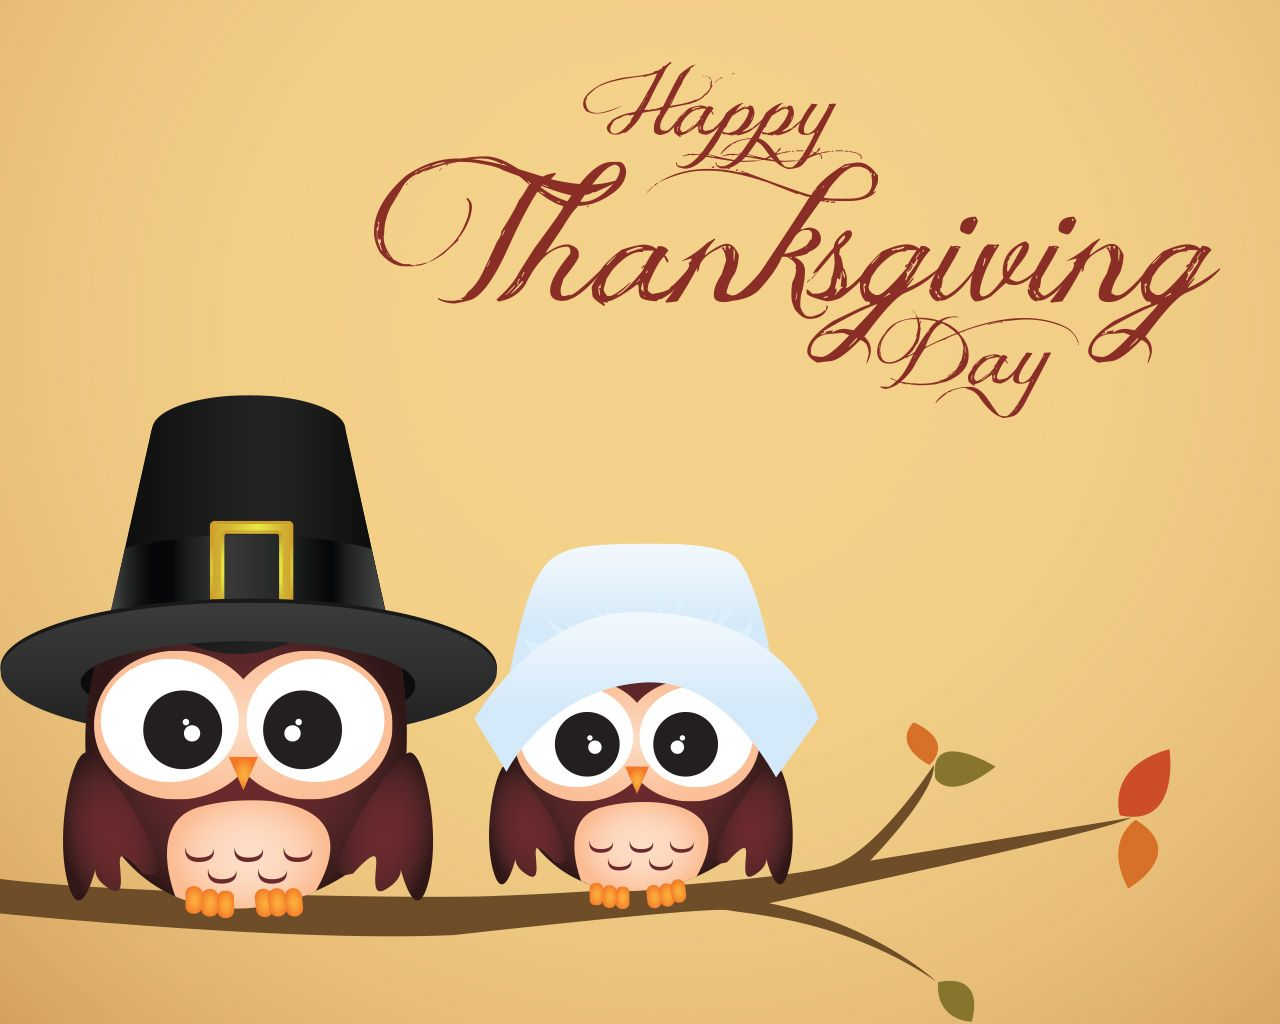 Happy Thanksgiving Day Photos For Download & Share with Your Friends